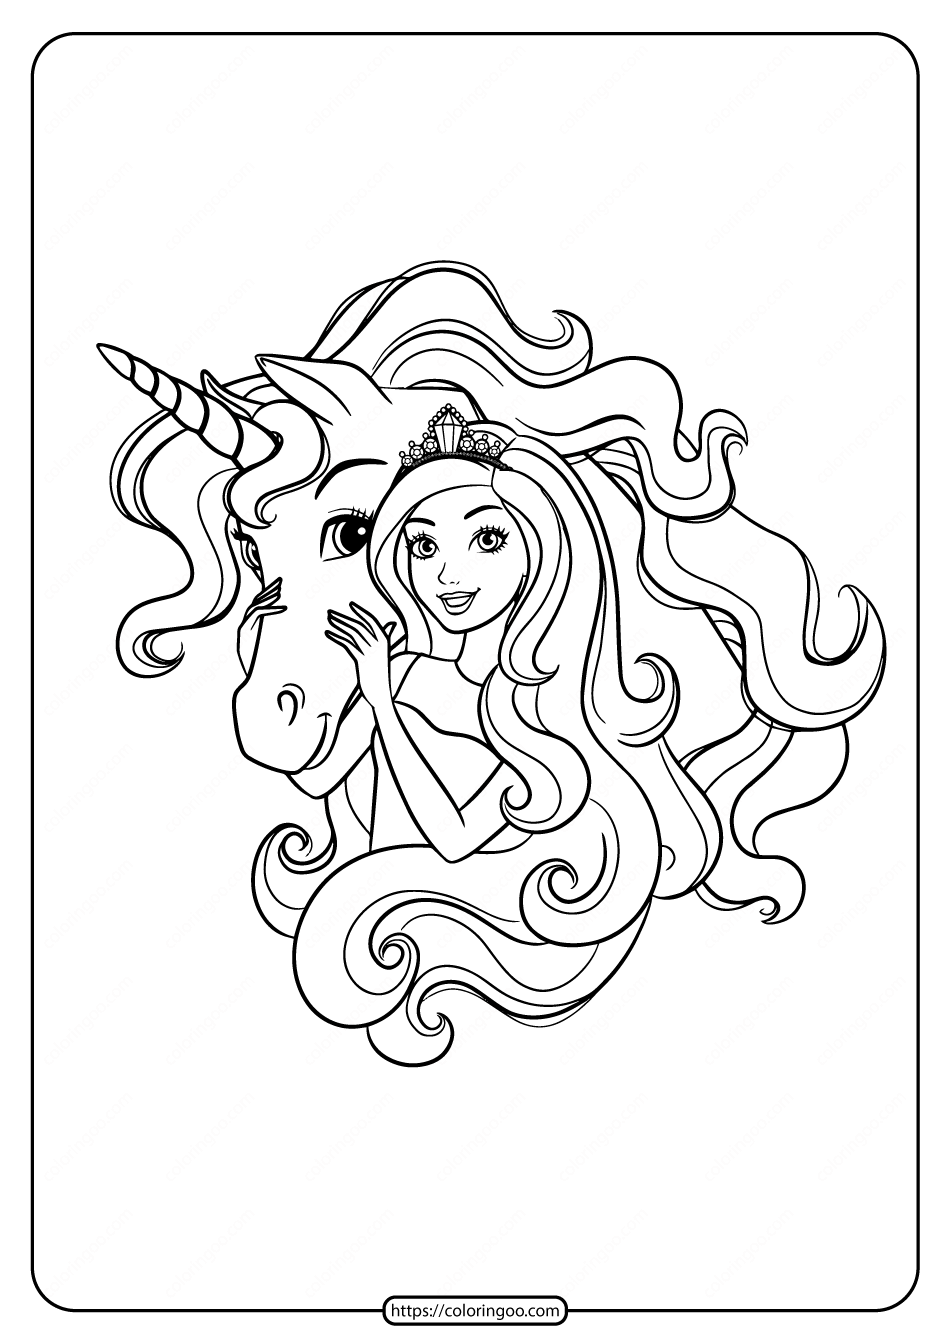 Barbie And Unicorn Unicorn Coloring Pages Dinosaur Coloring Pages Barbie Coloring Pages